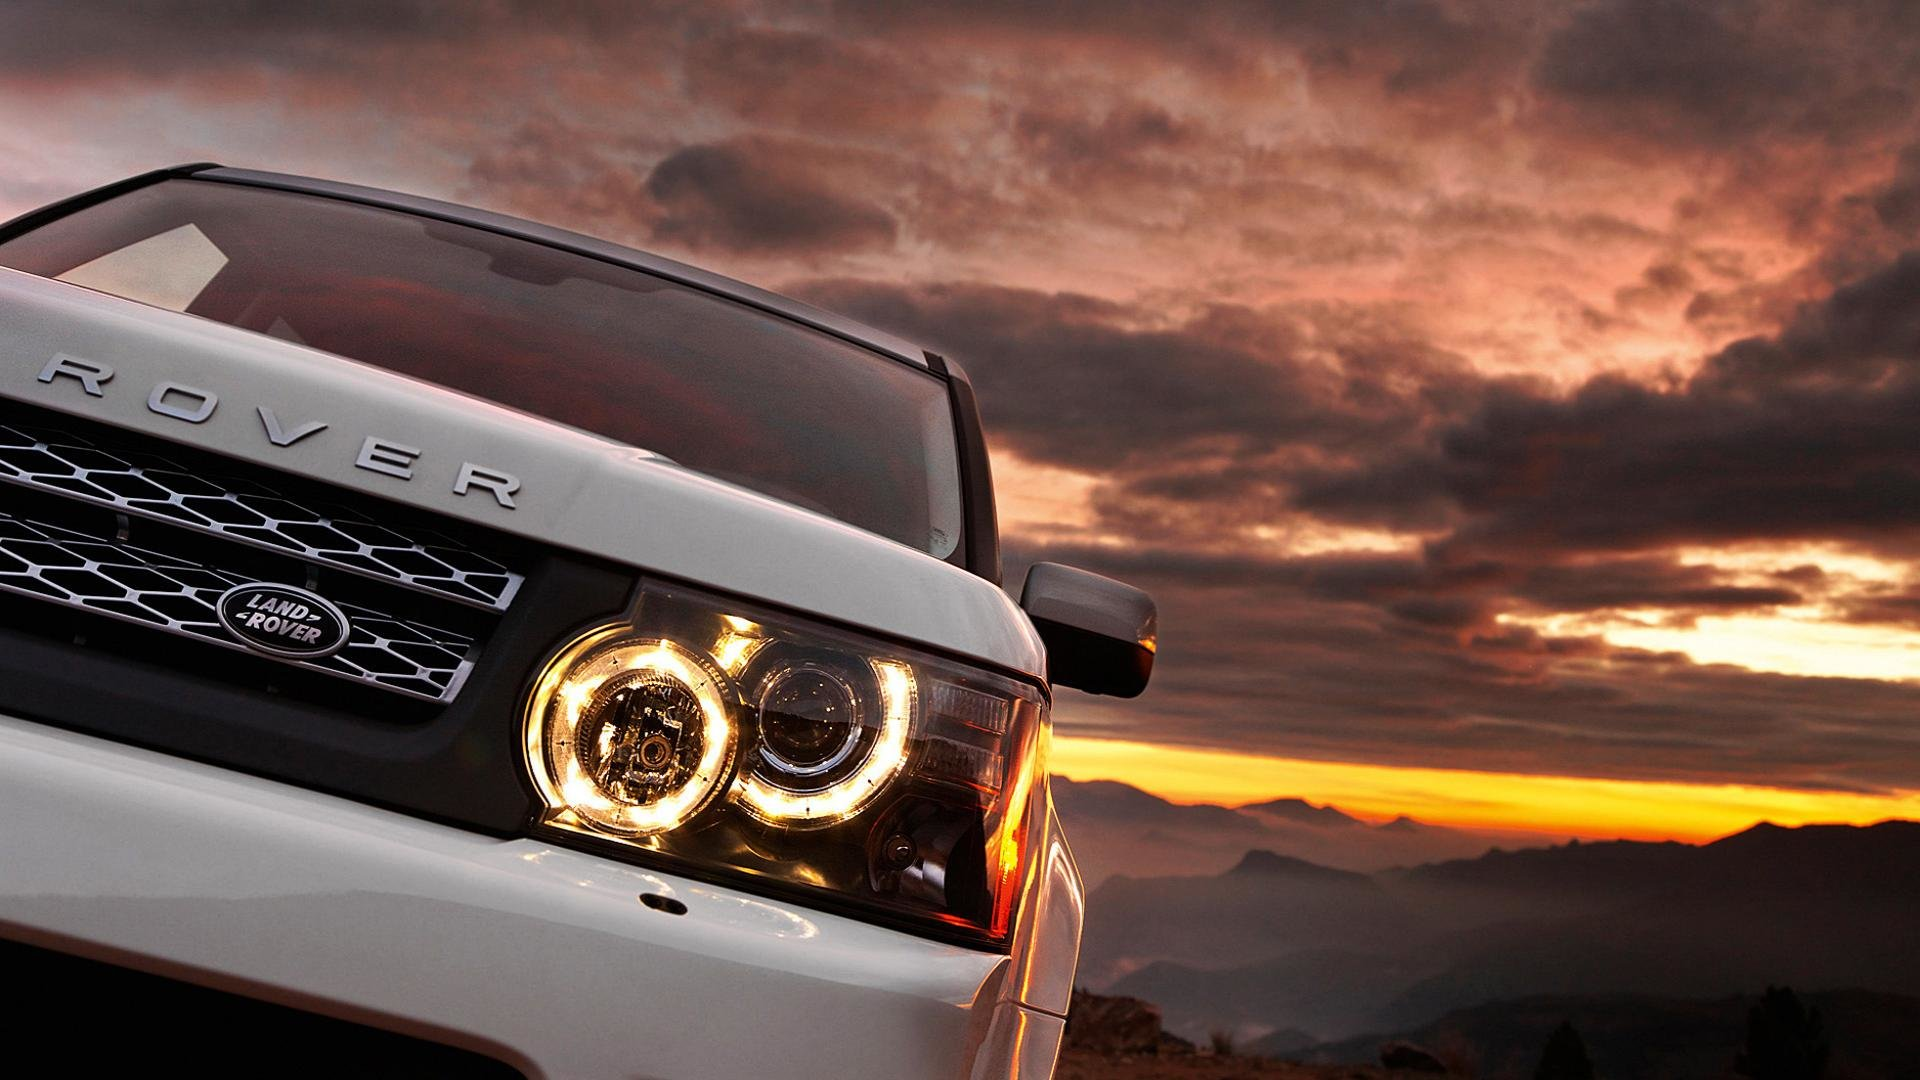 Awesome Range Rover Free Background Id162855 For Full Hd 1080p Pc